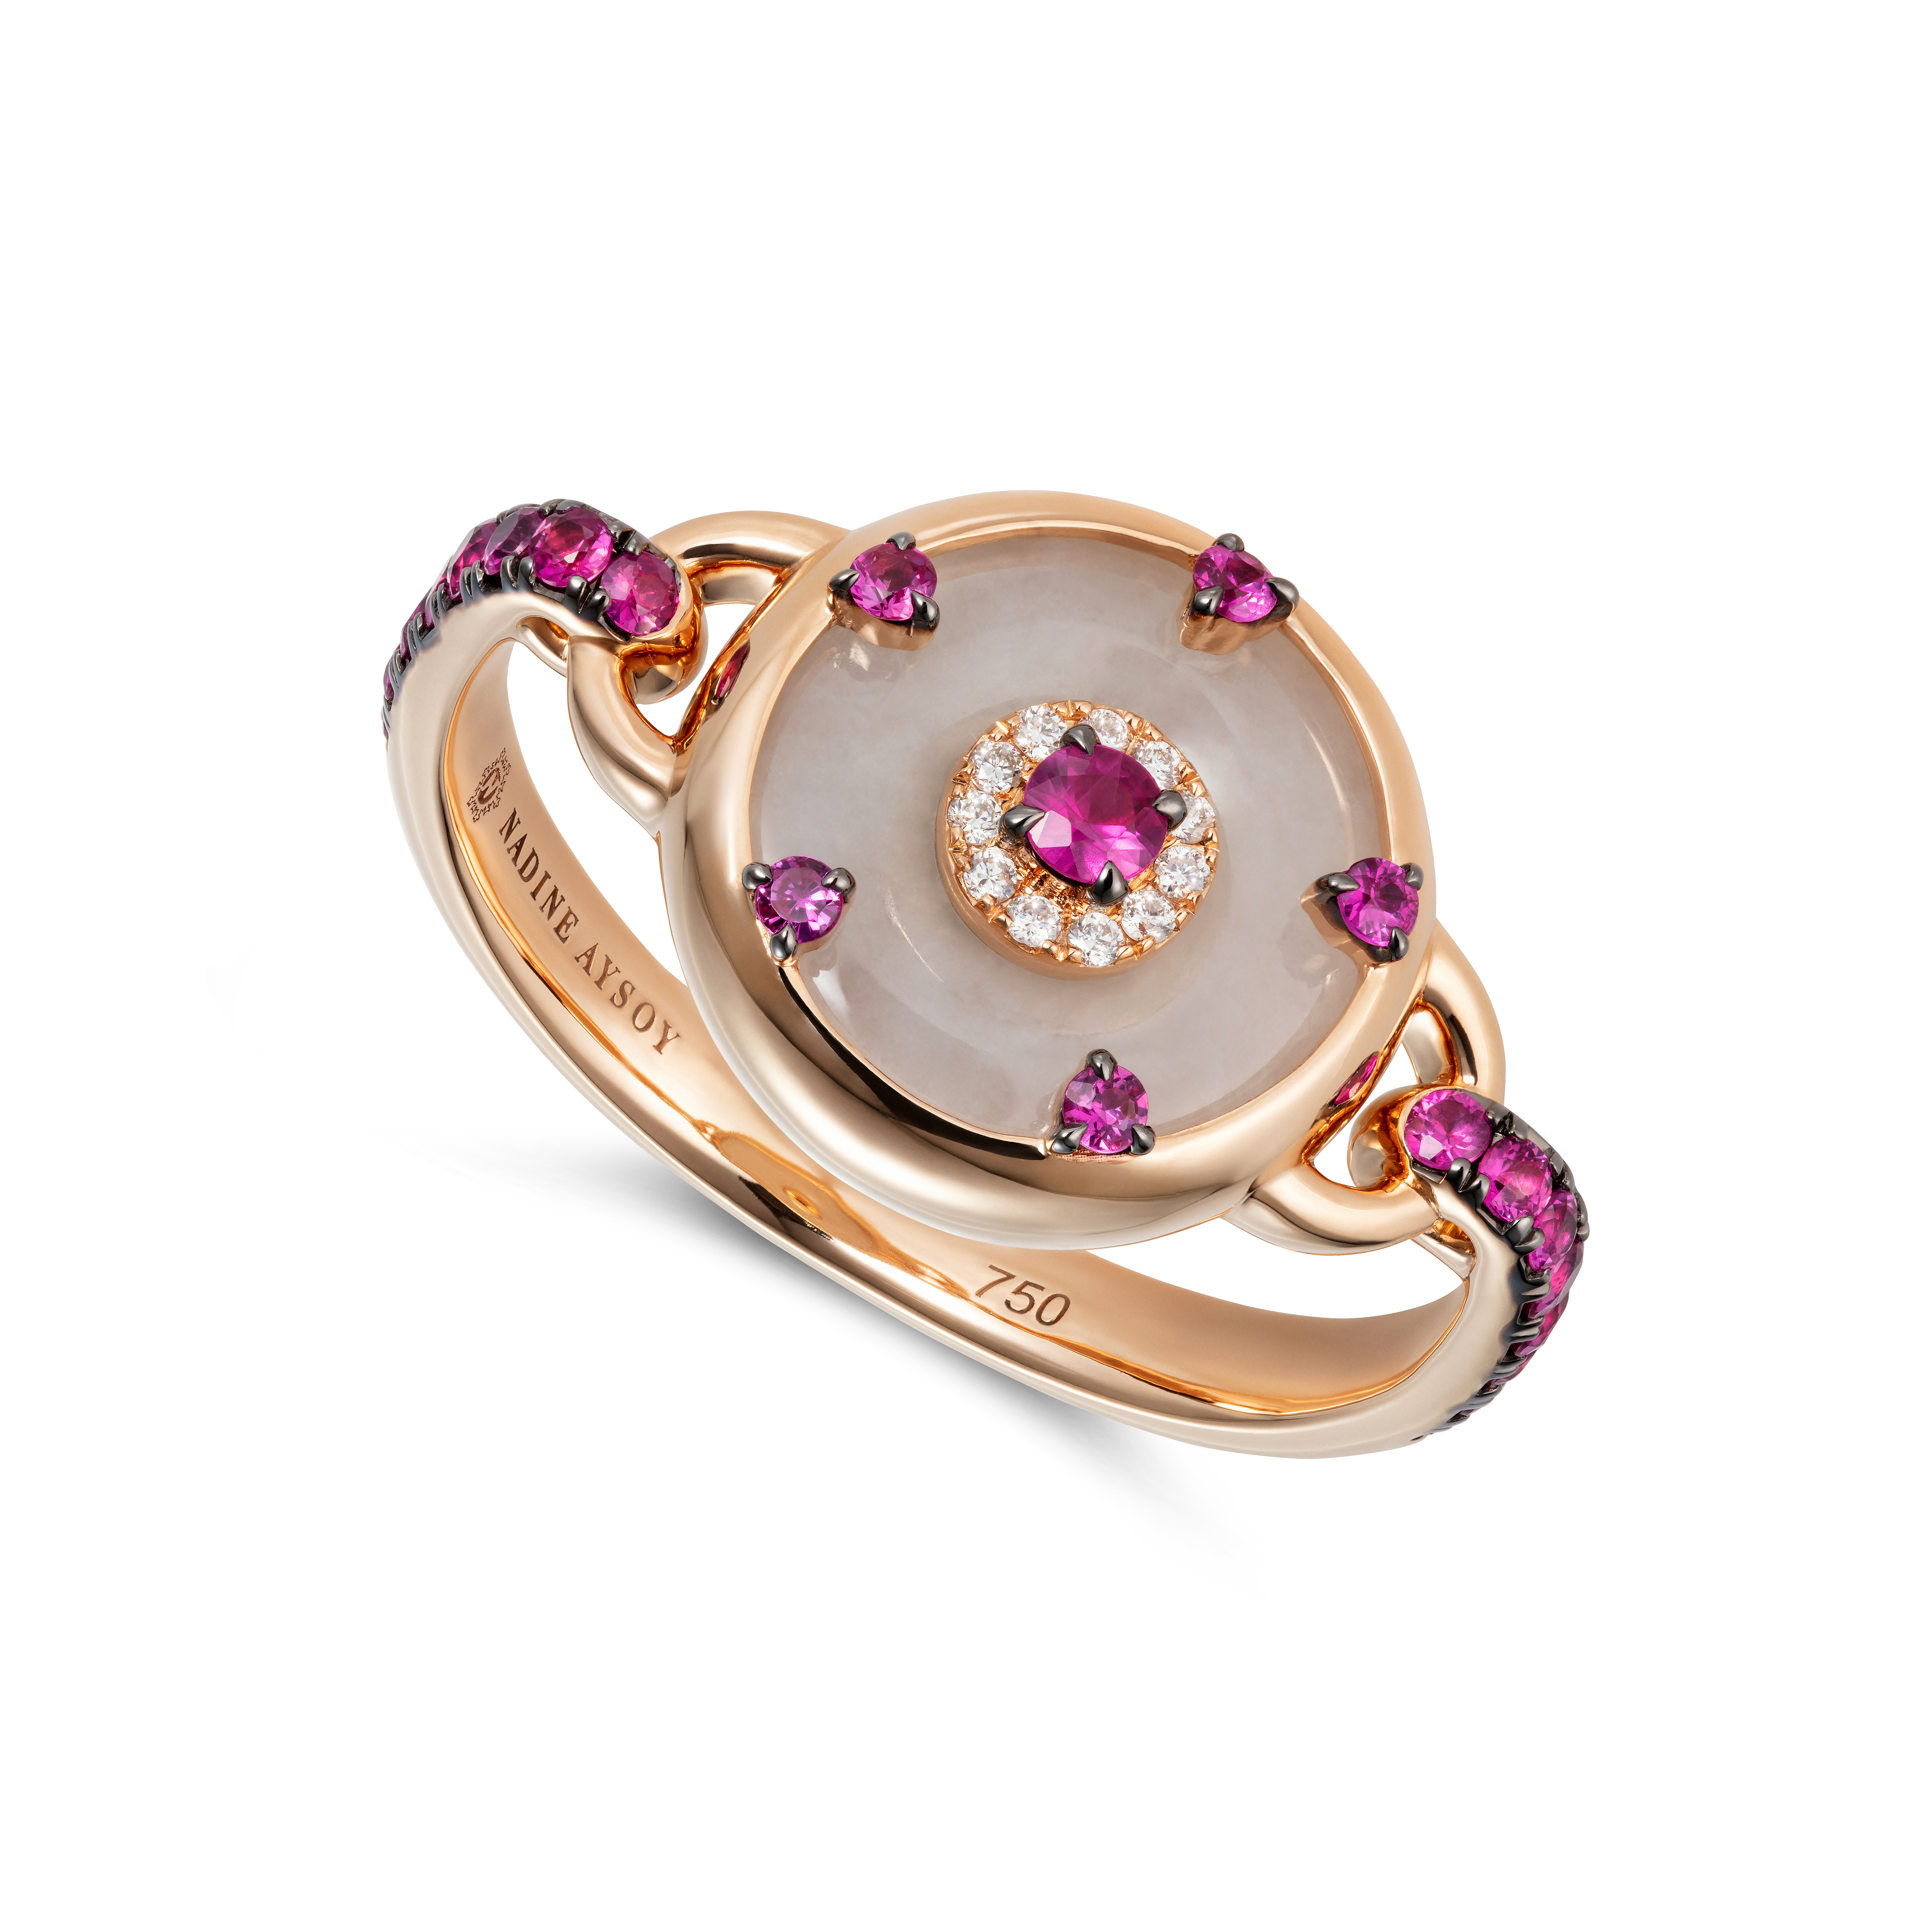 Celeste Petite Pink Sapphire Ring by Nadine Aysoy on curated-crowd.com